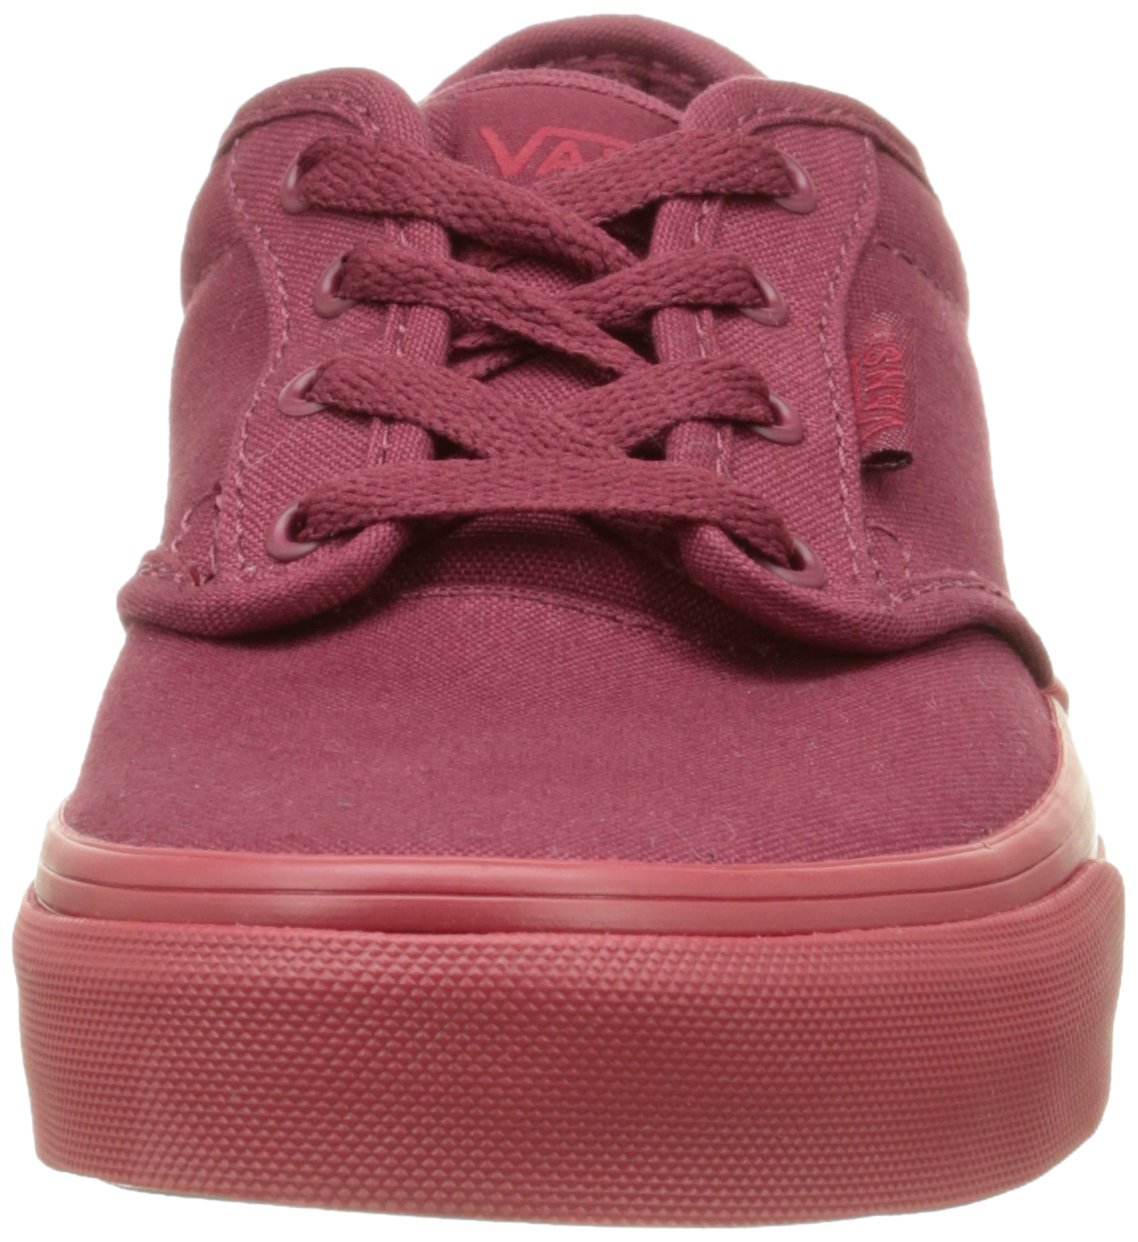 201f386a84 Vans - Vans Kid s youth Atwood Shoes Check Liner Burgundy Sneakers (6.5) (7 M  US Big Kid) - Walmart.com